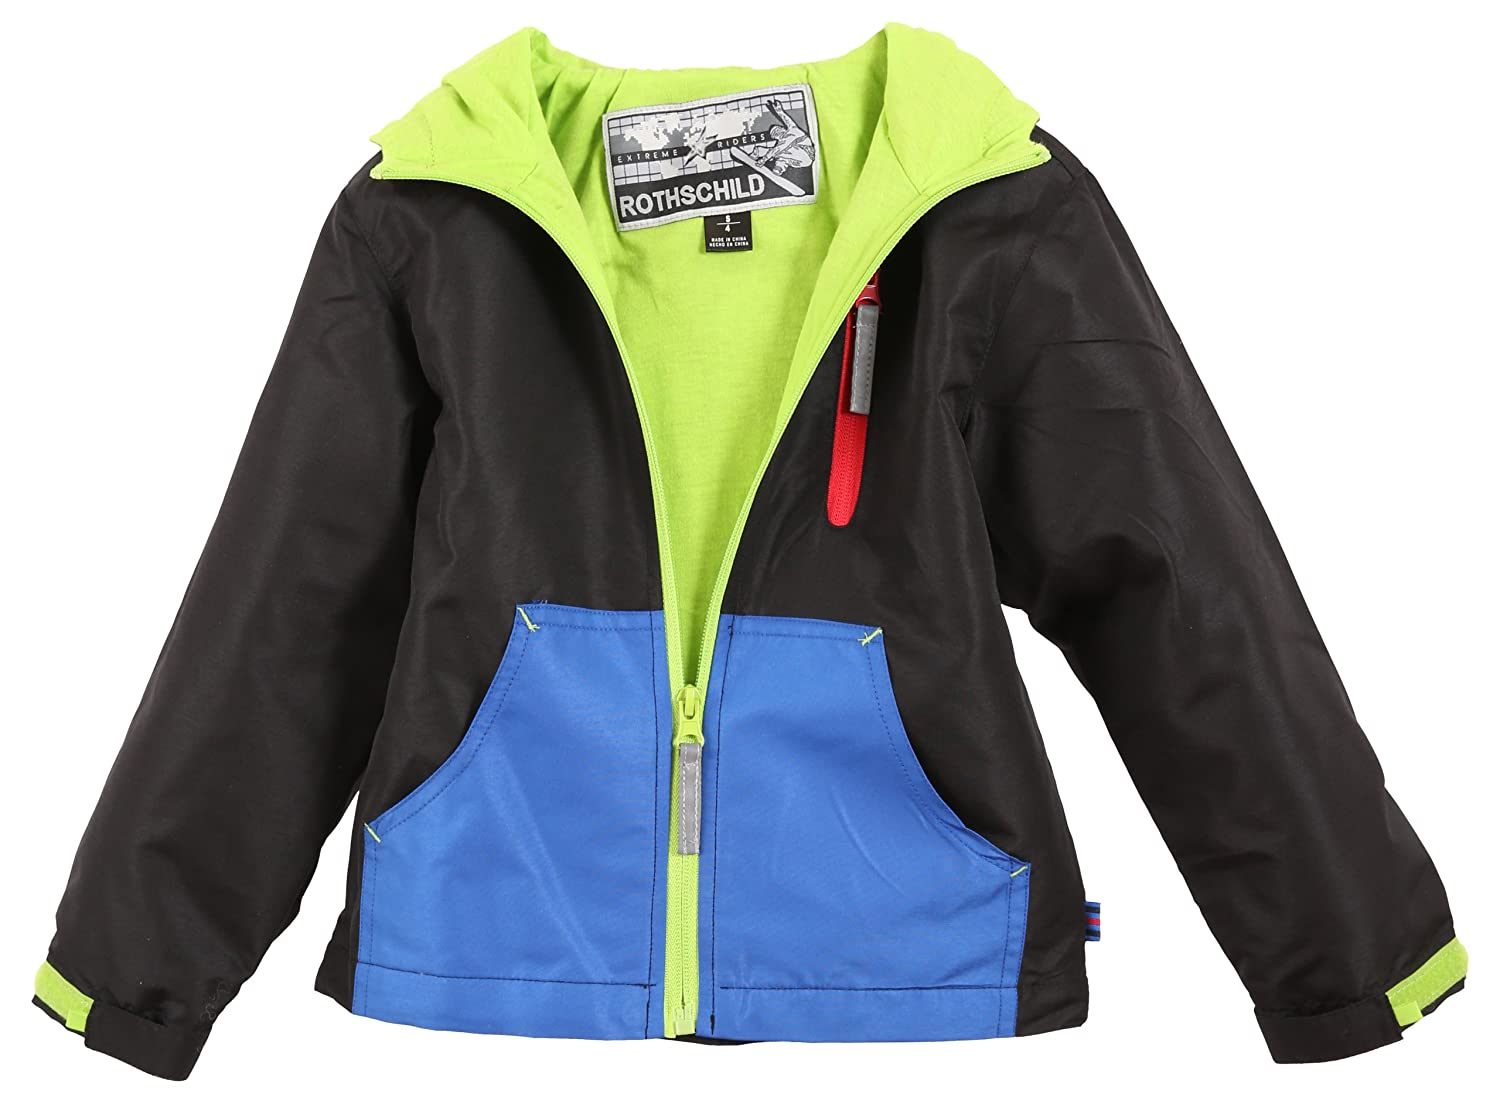 Rothschild Boys Toddlers Fleece Lined Hooded Rain and Spring Jacket - Sizes 2-20